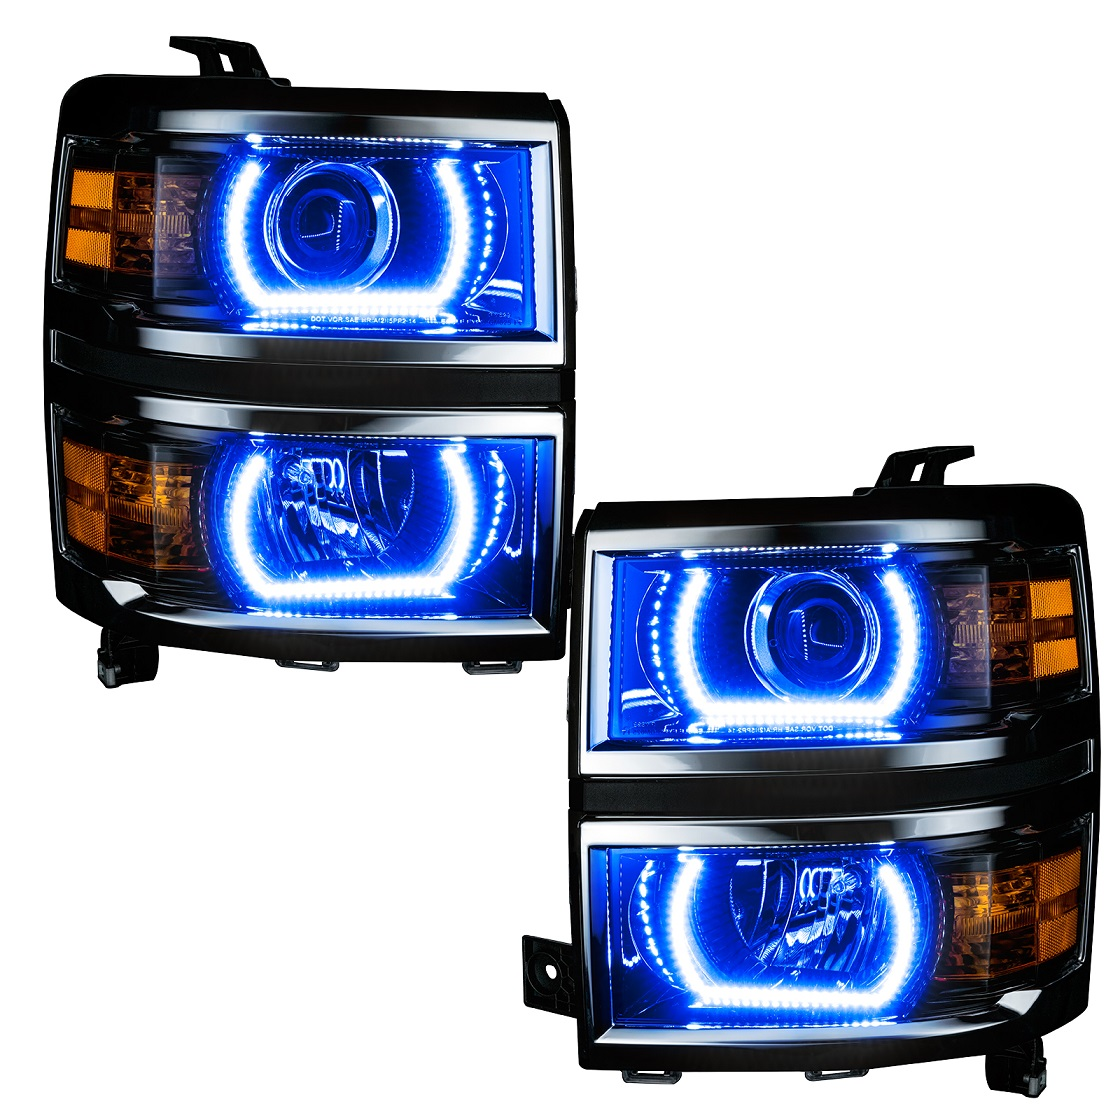 Oracle Color Changing Headlight And Foglight Halo Kits For -5862